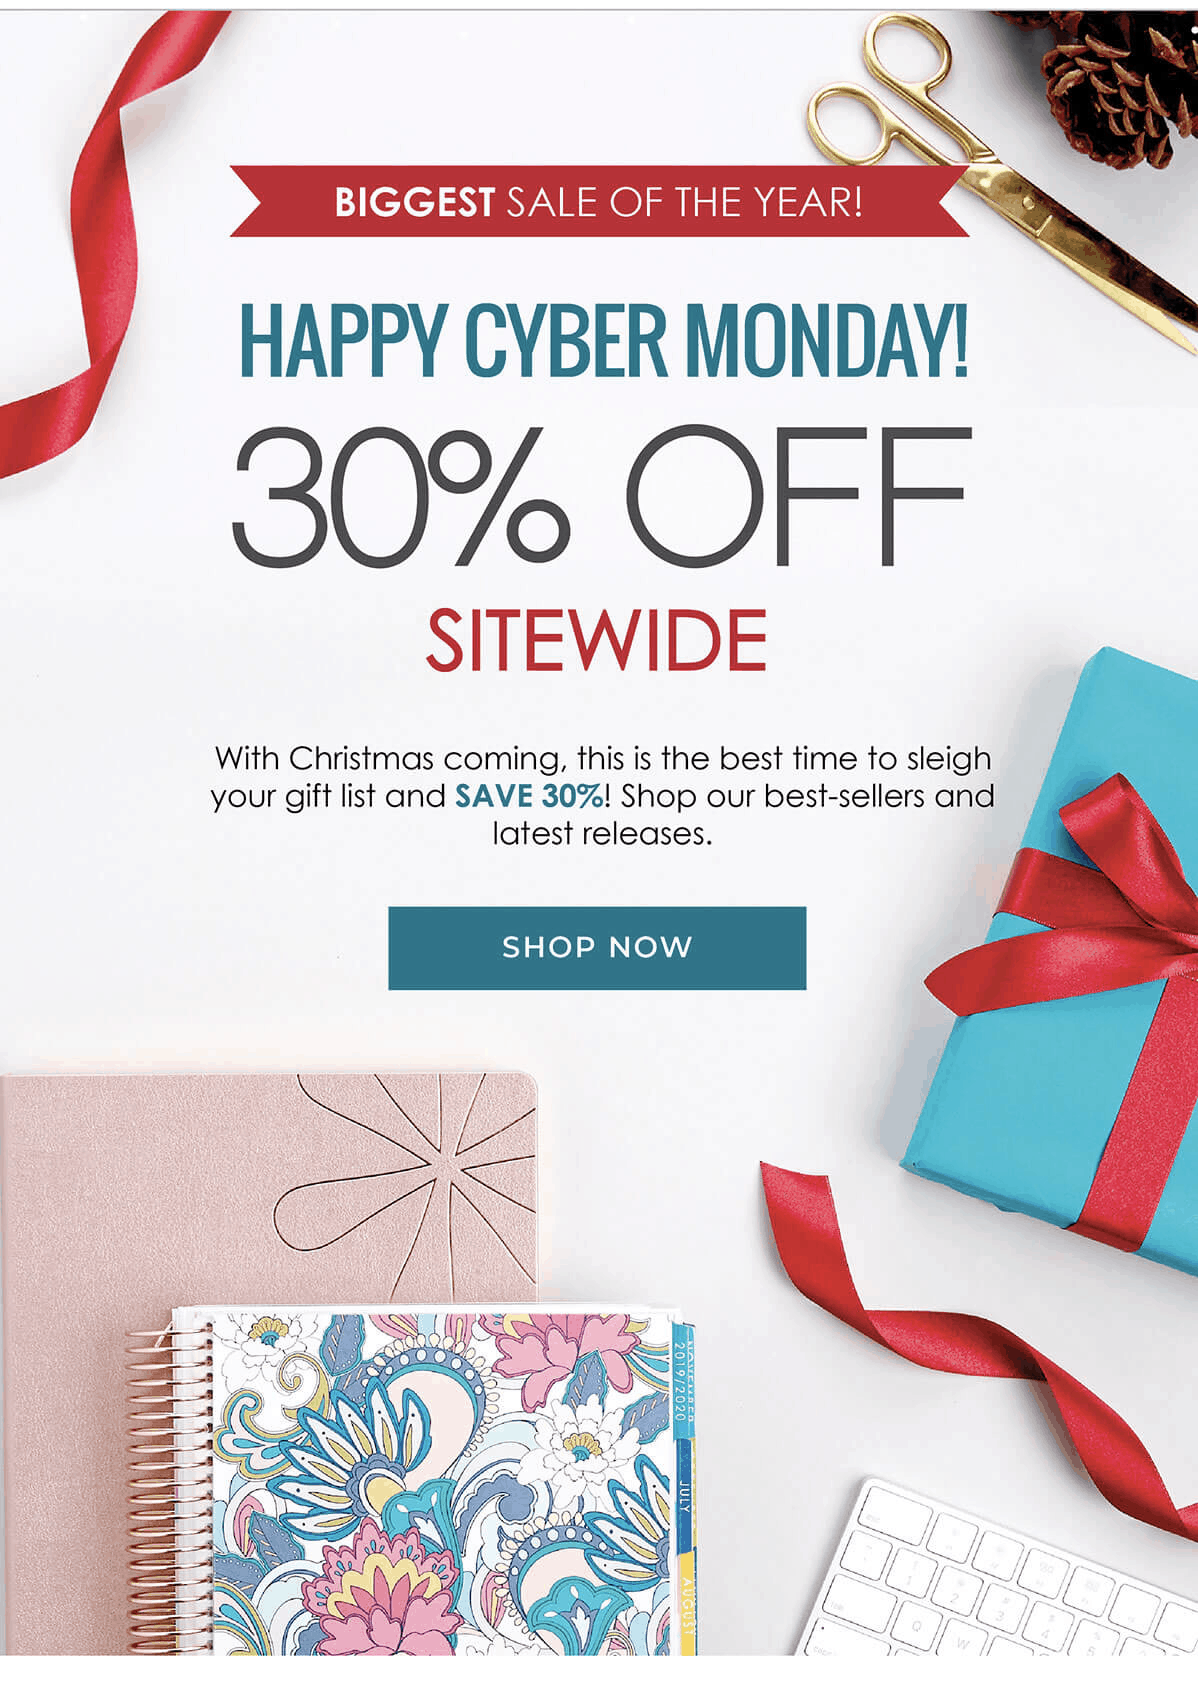 Erin Condren Cyber Monday Deal: Get 30% Off Sitewide!